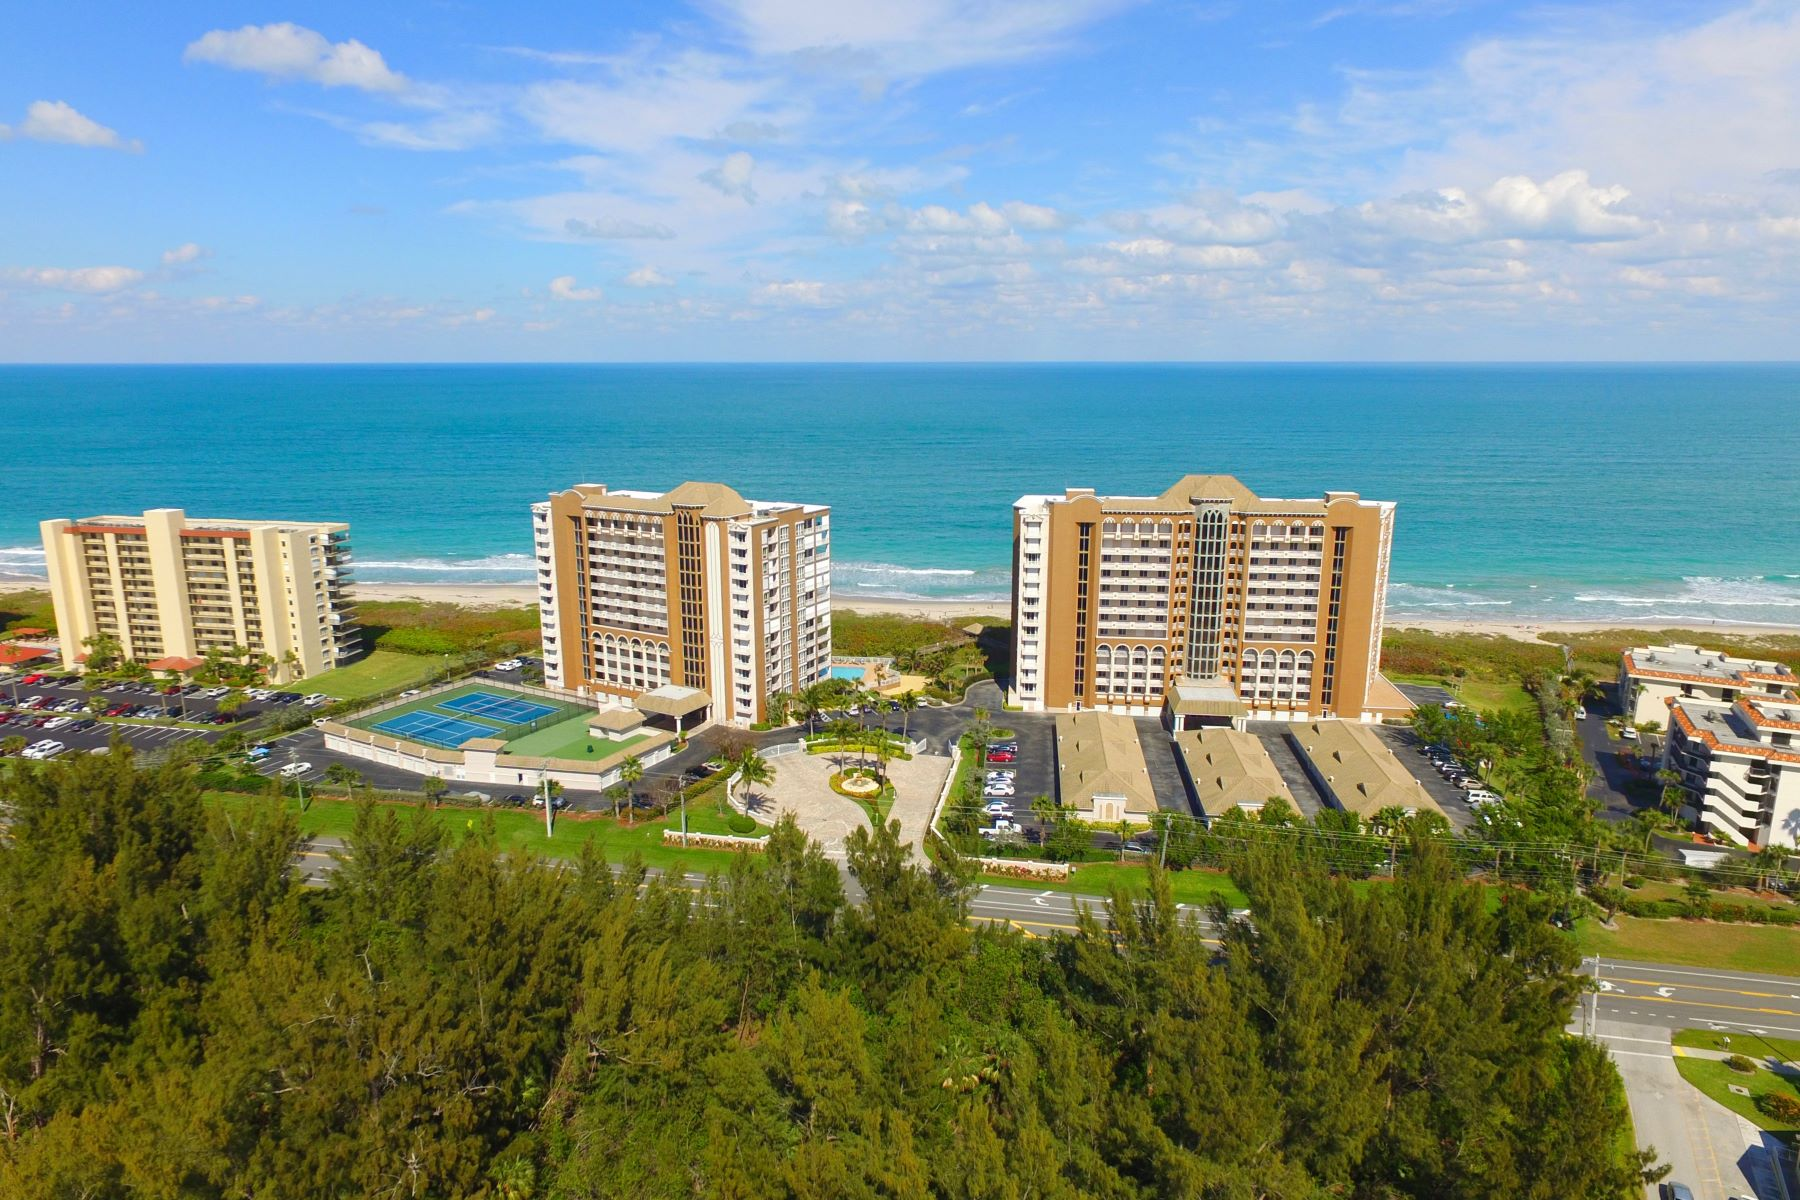 Condominiums 为 销售 在 Experience Sea Side Elegance in this Seveth Floor Condo! 4160 N Highway A1A 707A 哈钦森岛, 佛罗里达州 34949 美国